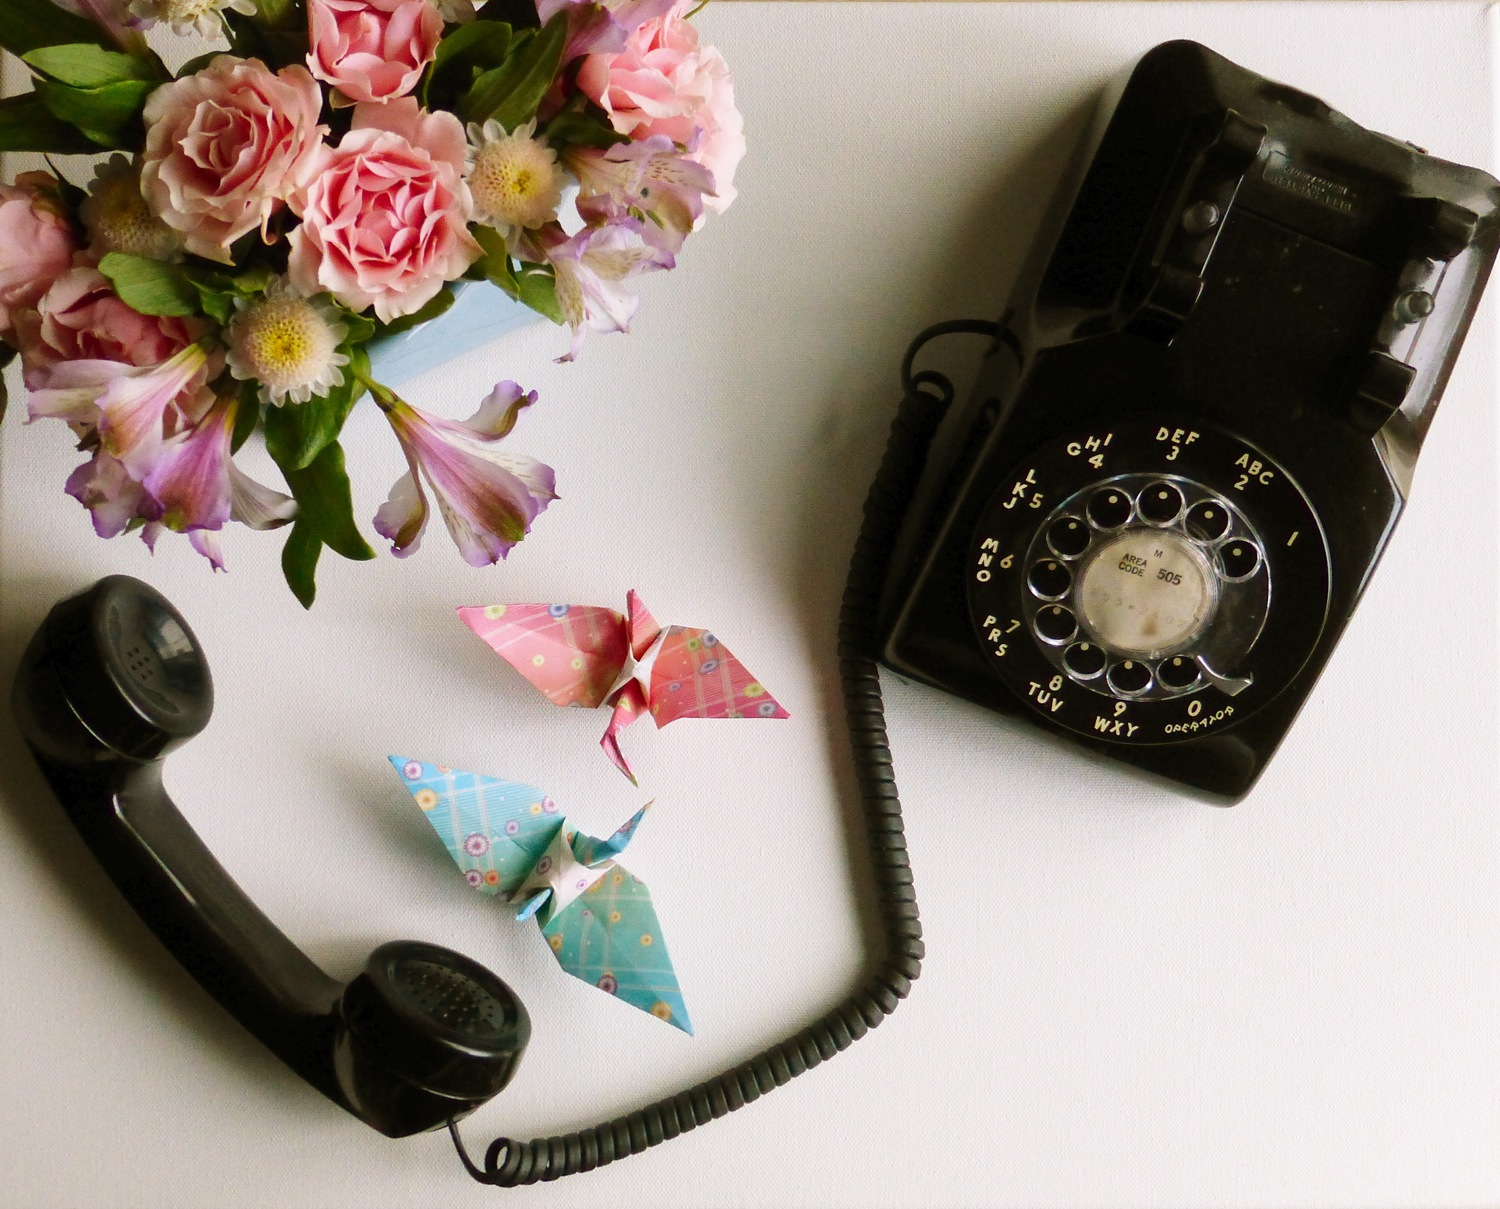 vintage telephone, vintage rotary telephone, vintage phone, vintage rotary phone, black vintage rotary dial telephone, origami birds, origami cranes, paper cranes, blue origami bird, blue origami crane, pink origami bird, pink origami crane, flowers, flower bouquet, rose bouquet, rose flower bouquet